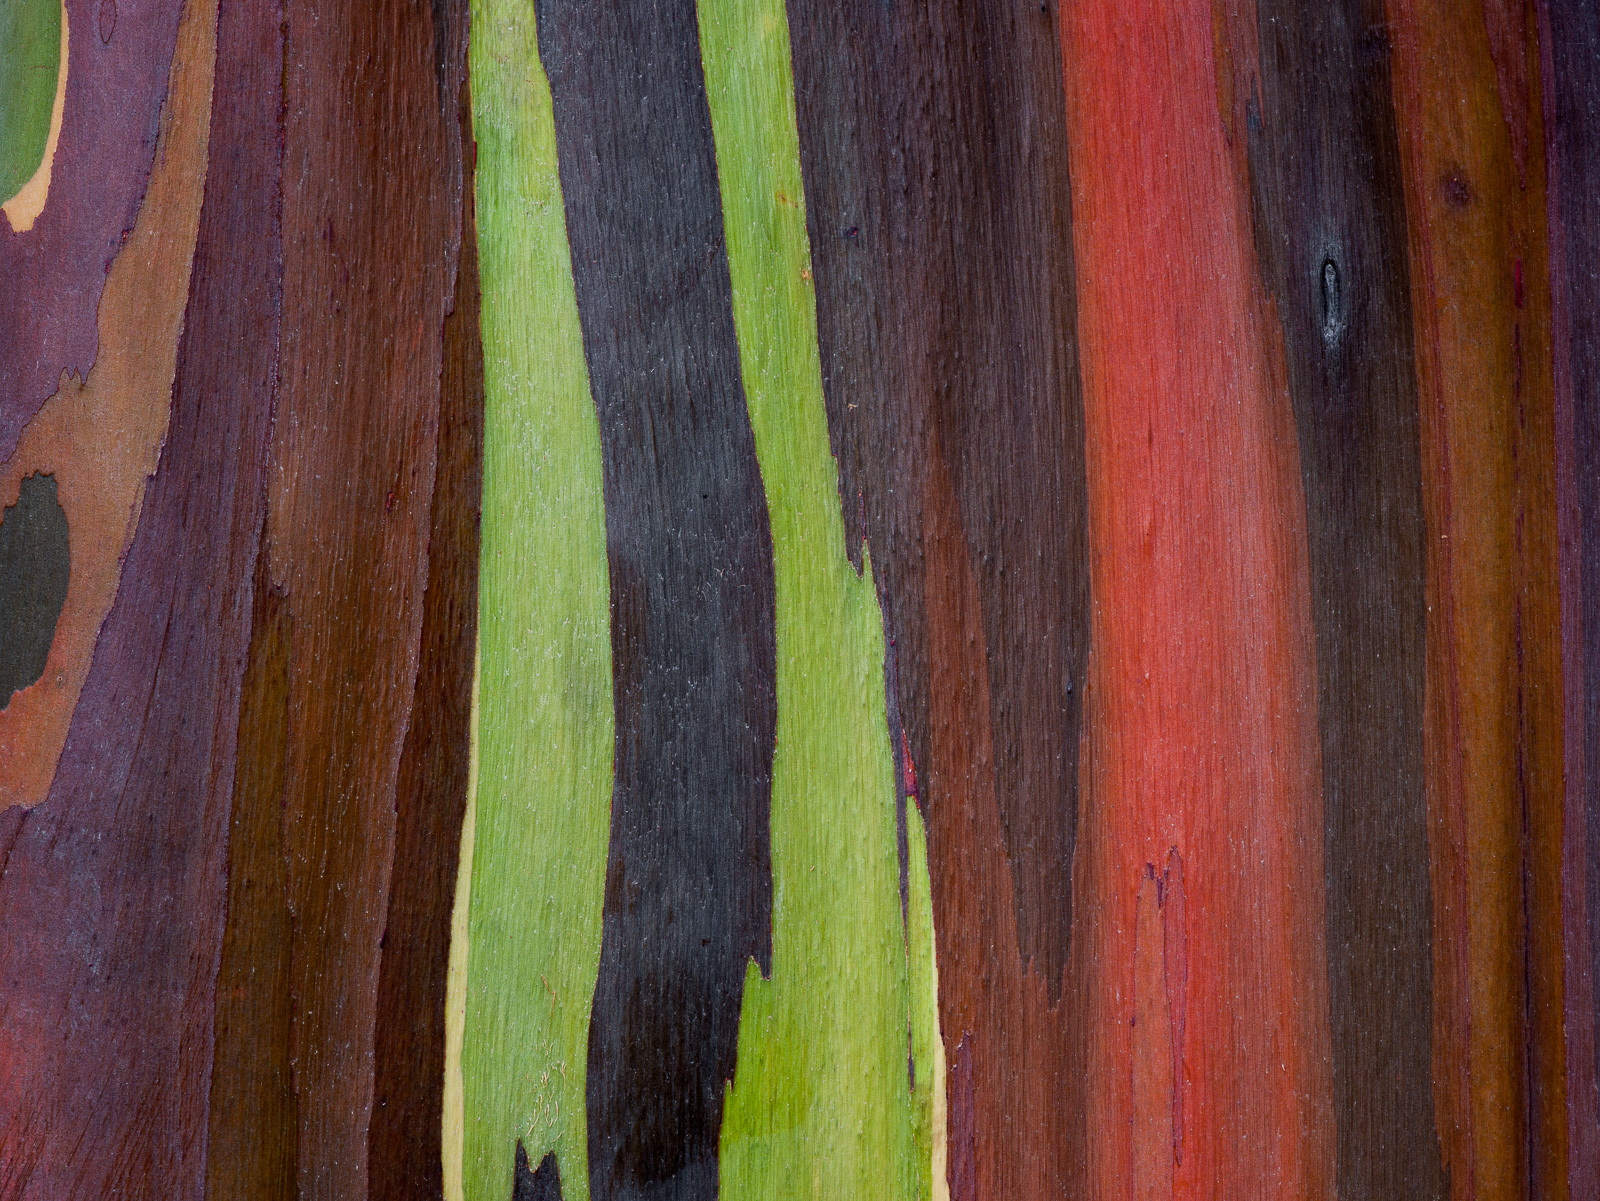 The Rainbow,Kauai,Rainbow Eucalyptus tree,Colors, photo